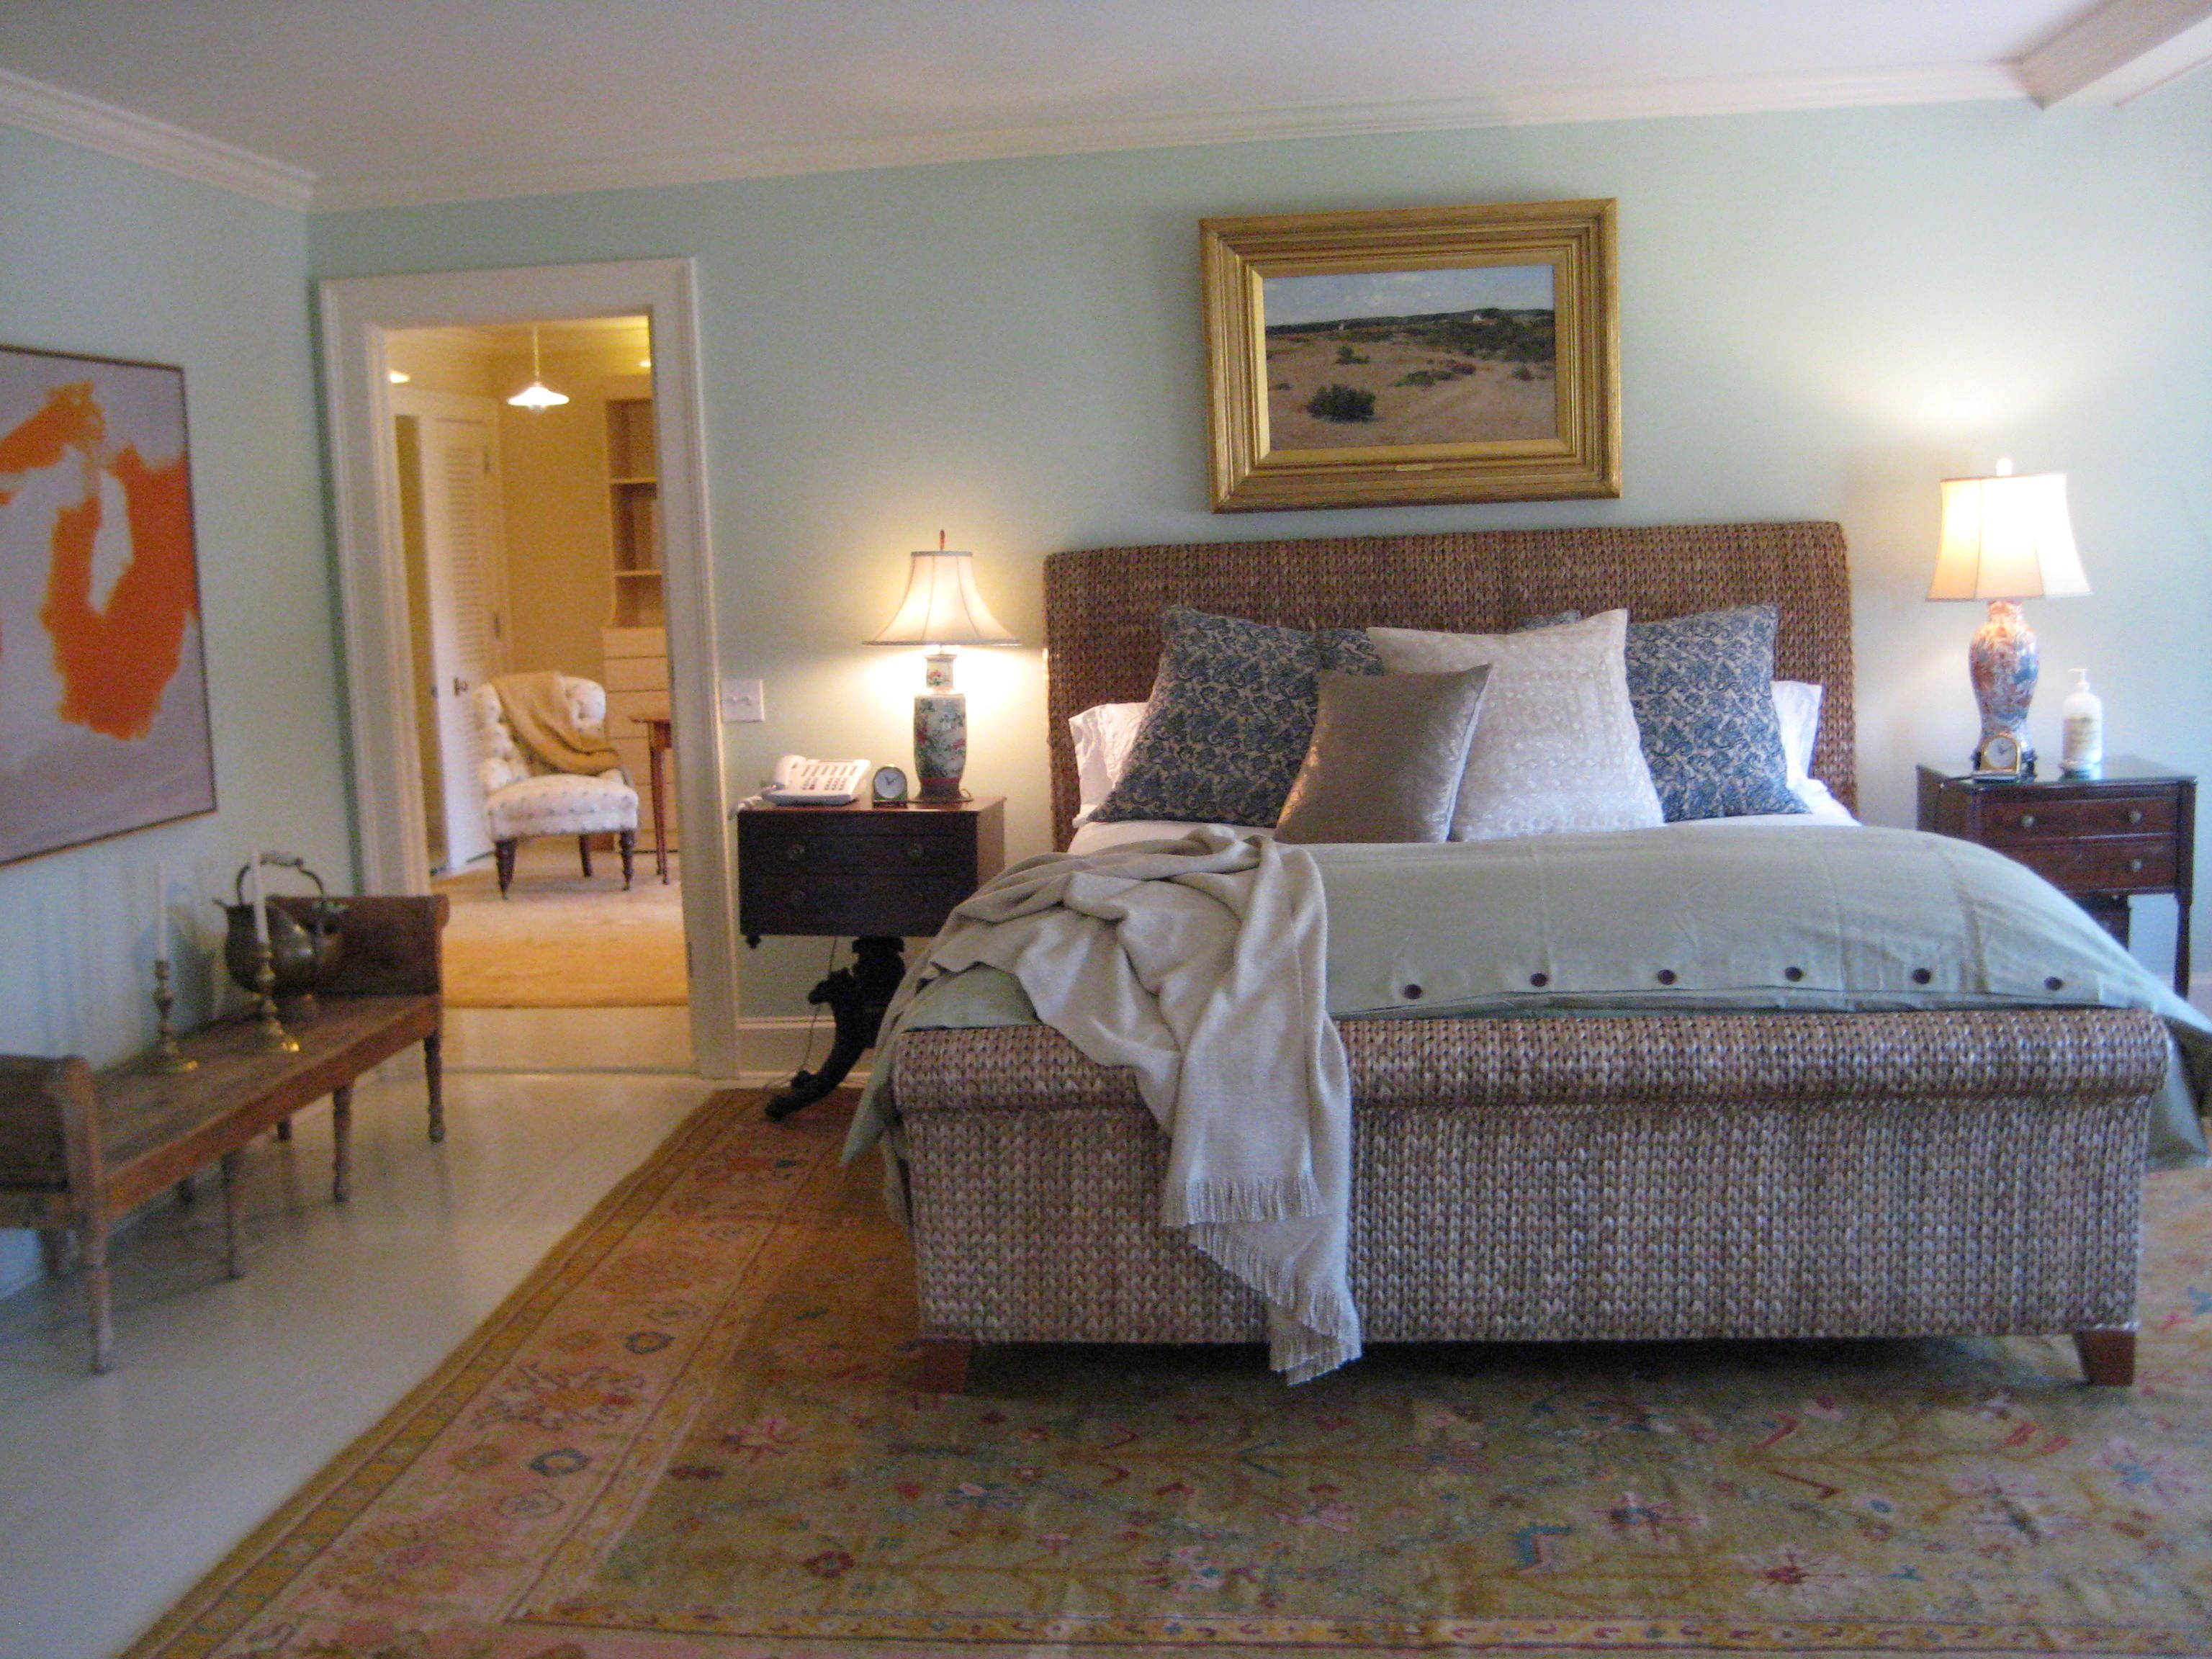 Seagrass beds furniture - One Of My Favorite Bedrooms I Decorated At A Beach House In The Hamptons Seagrass